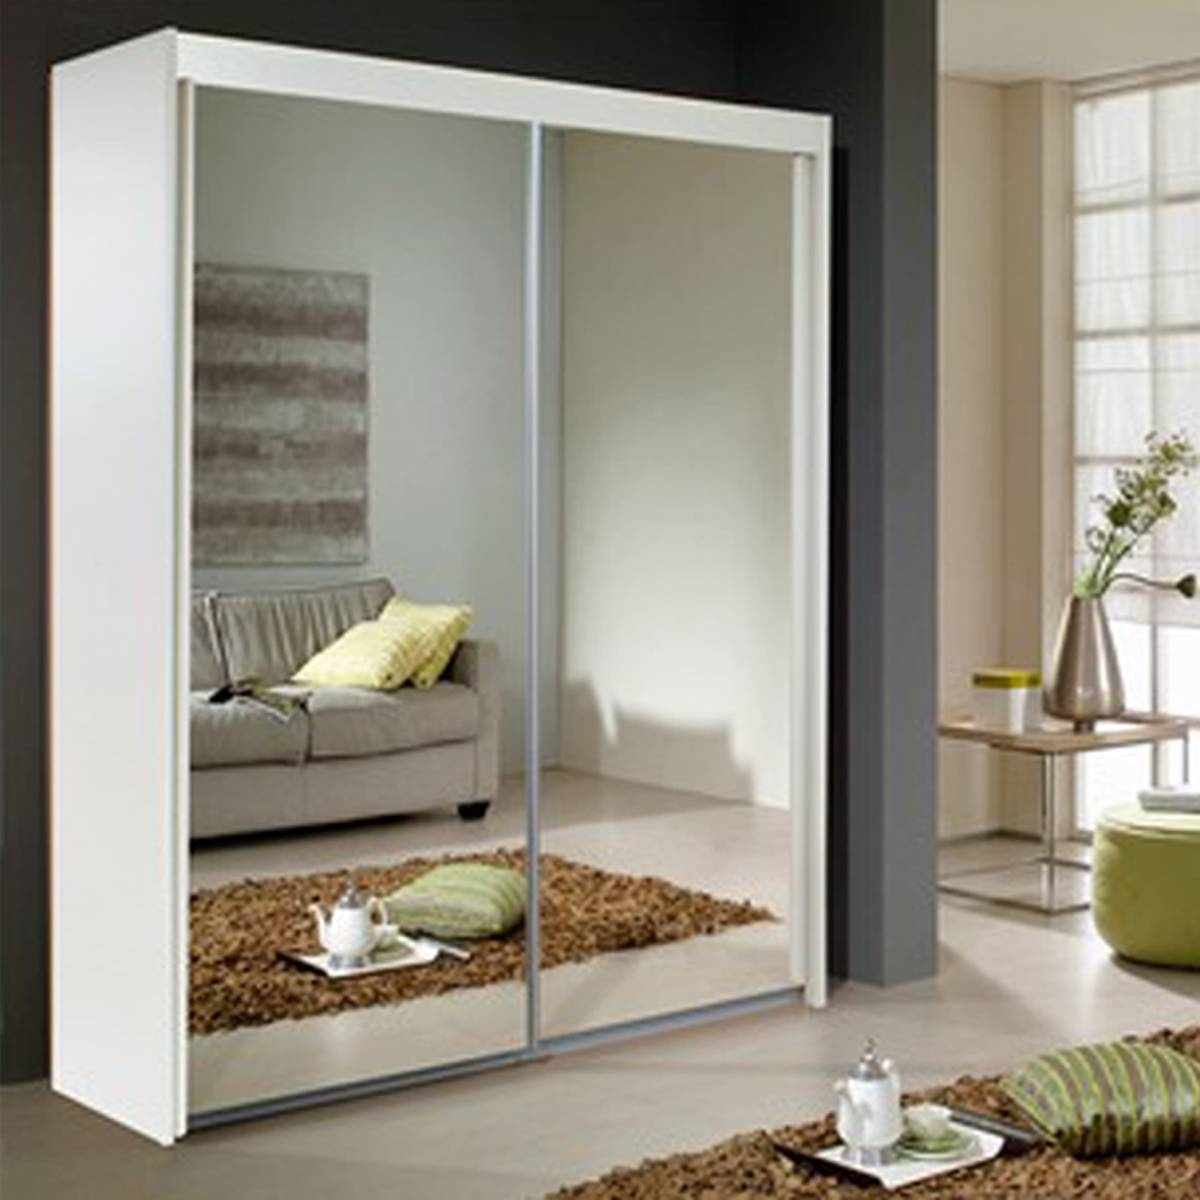 Sliding Door Mirrored Wardrobe From The House Of Reeves Croydon With Regard To Double Mirrored Wardrobes (View 10 of 15)